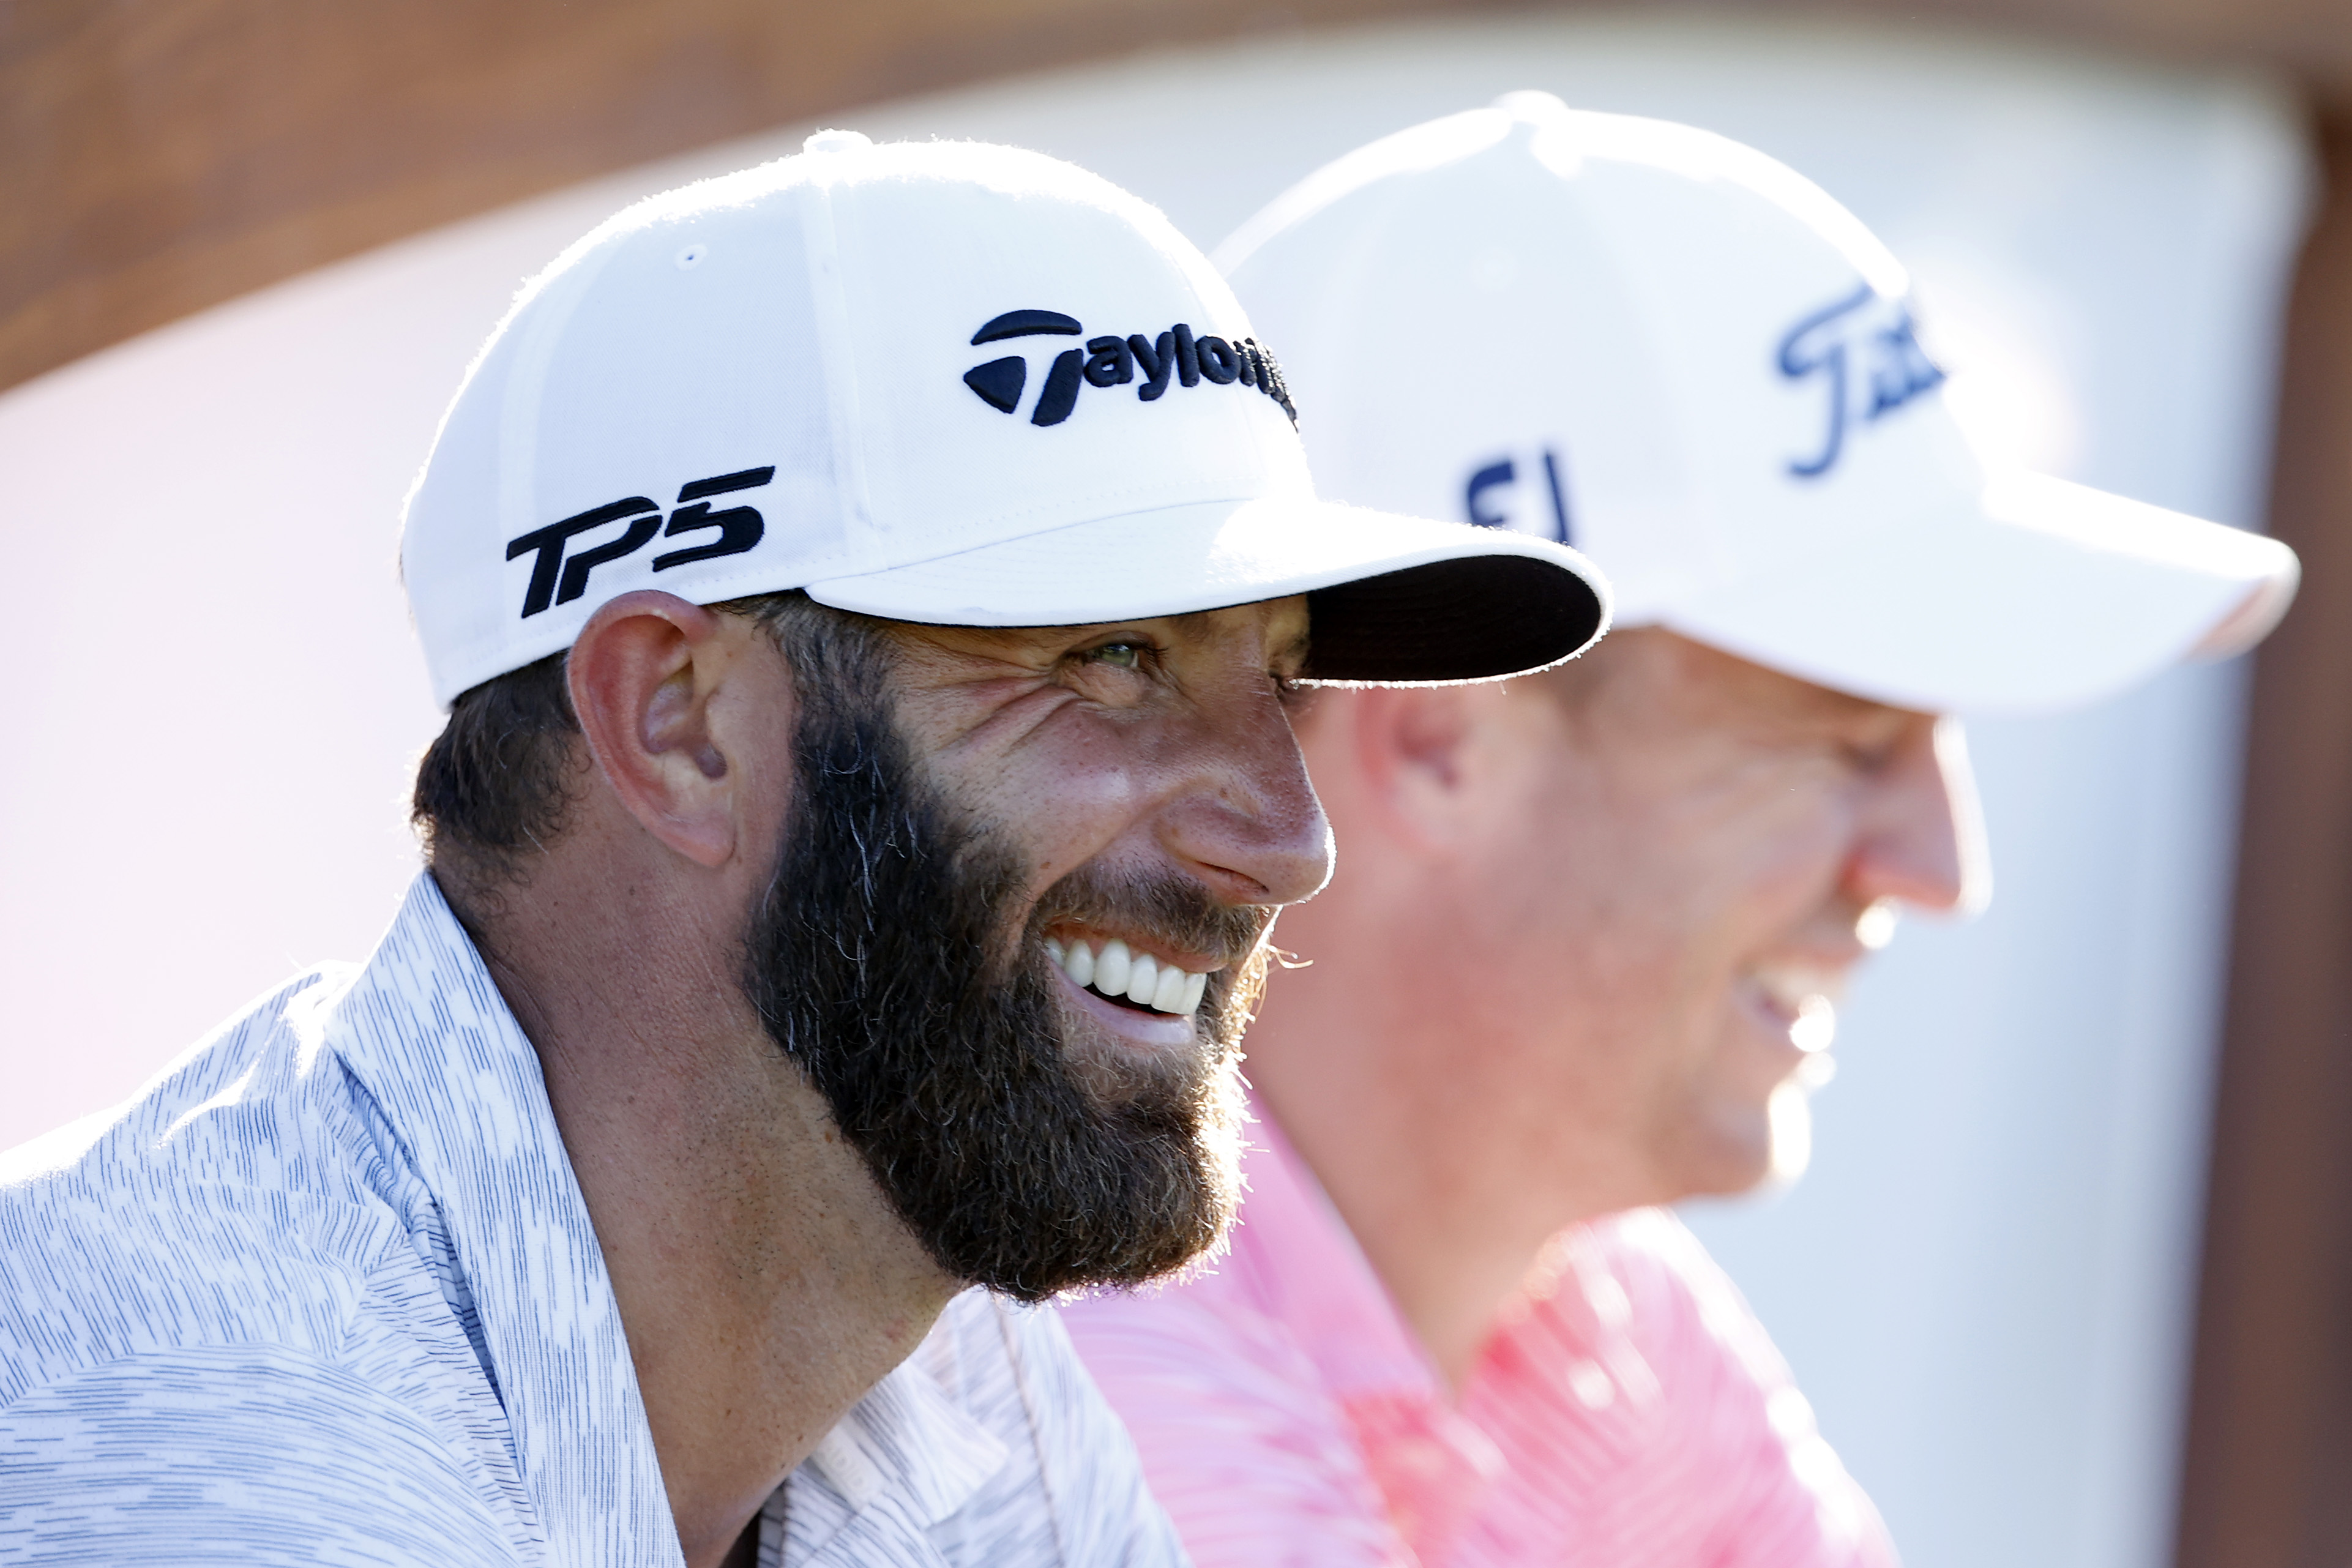 Dustin Johnson laughs as they wait on the 18th tee during the 2021 Sentry Tournament Of Champions